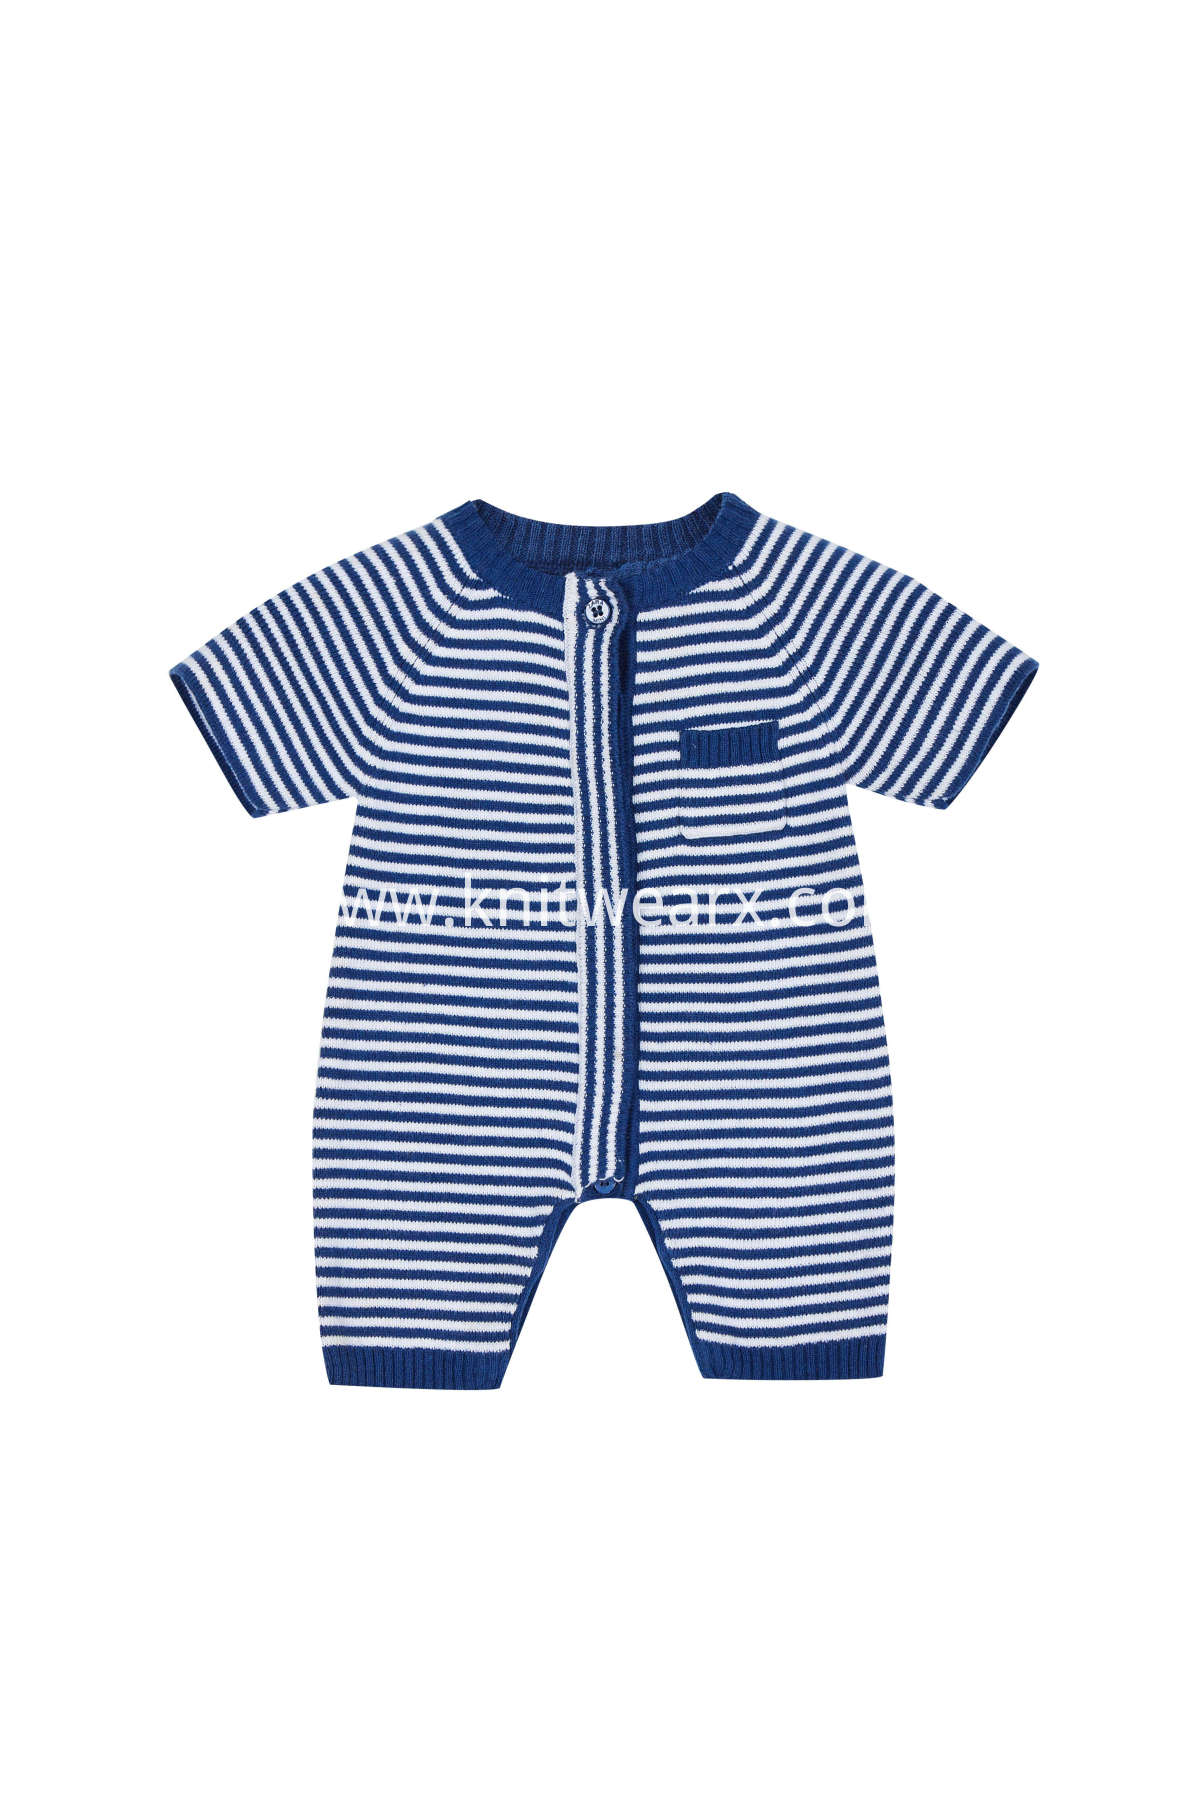 Baby's Summer Stripe Pajamas Button Closure Crew Neck Sweater